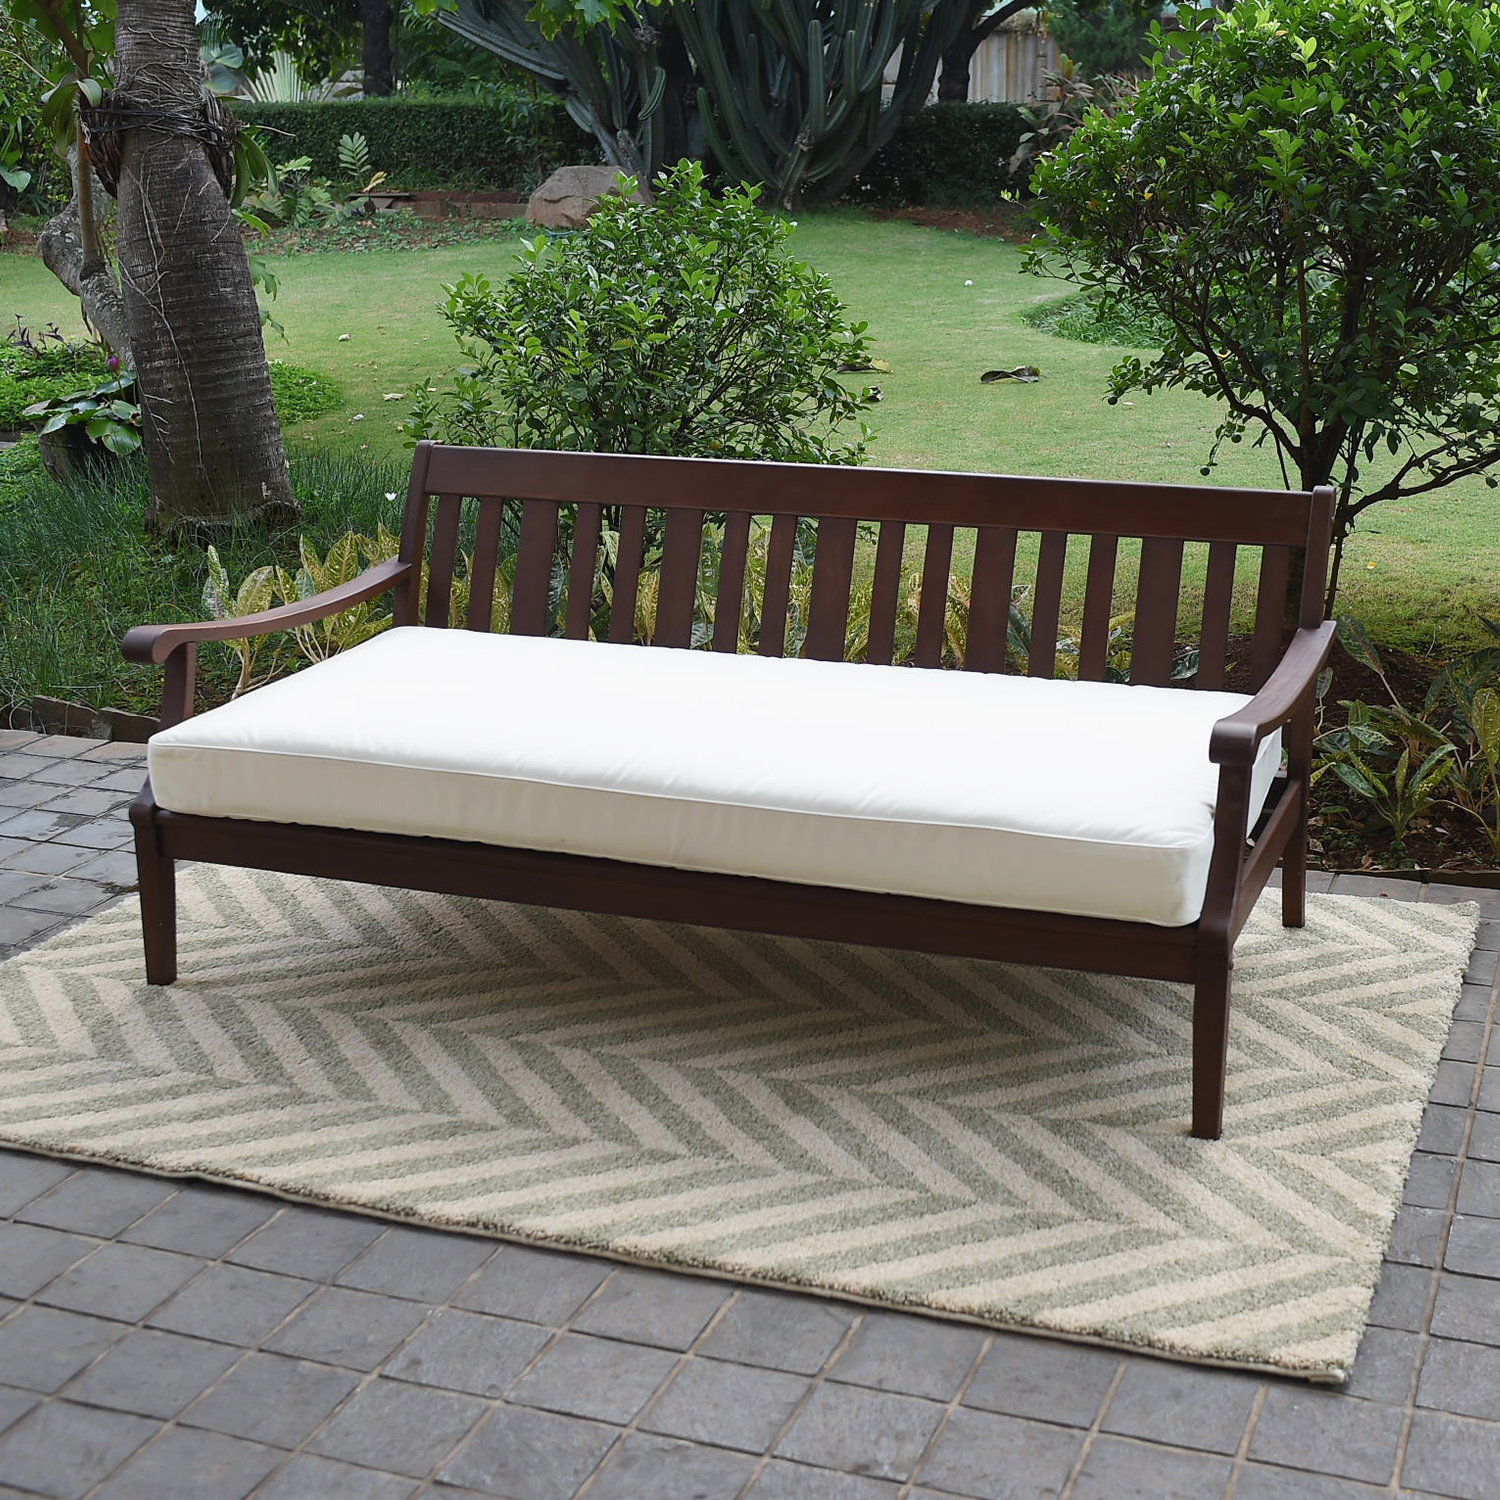 Wooden Outdoor Daybed - home decor photos gallery